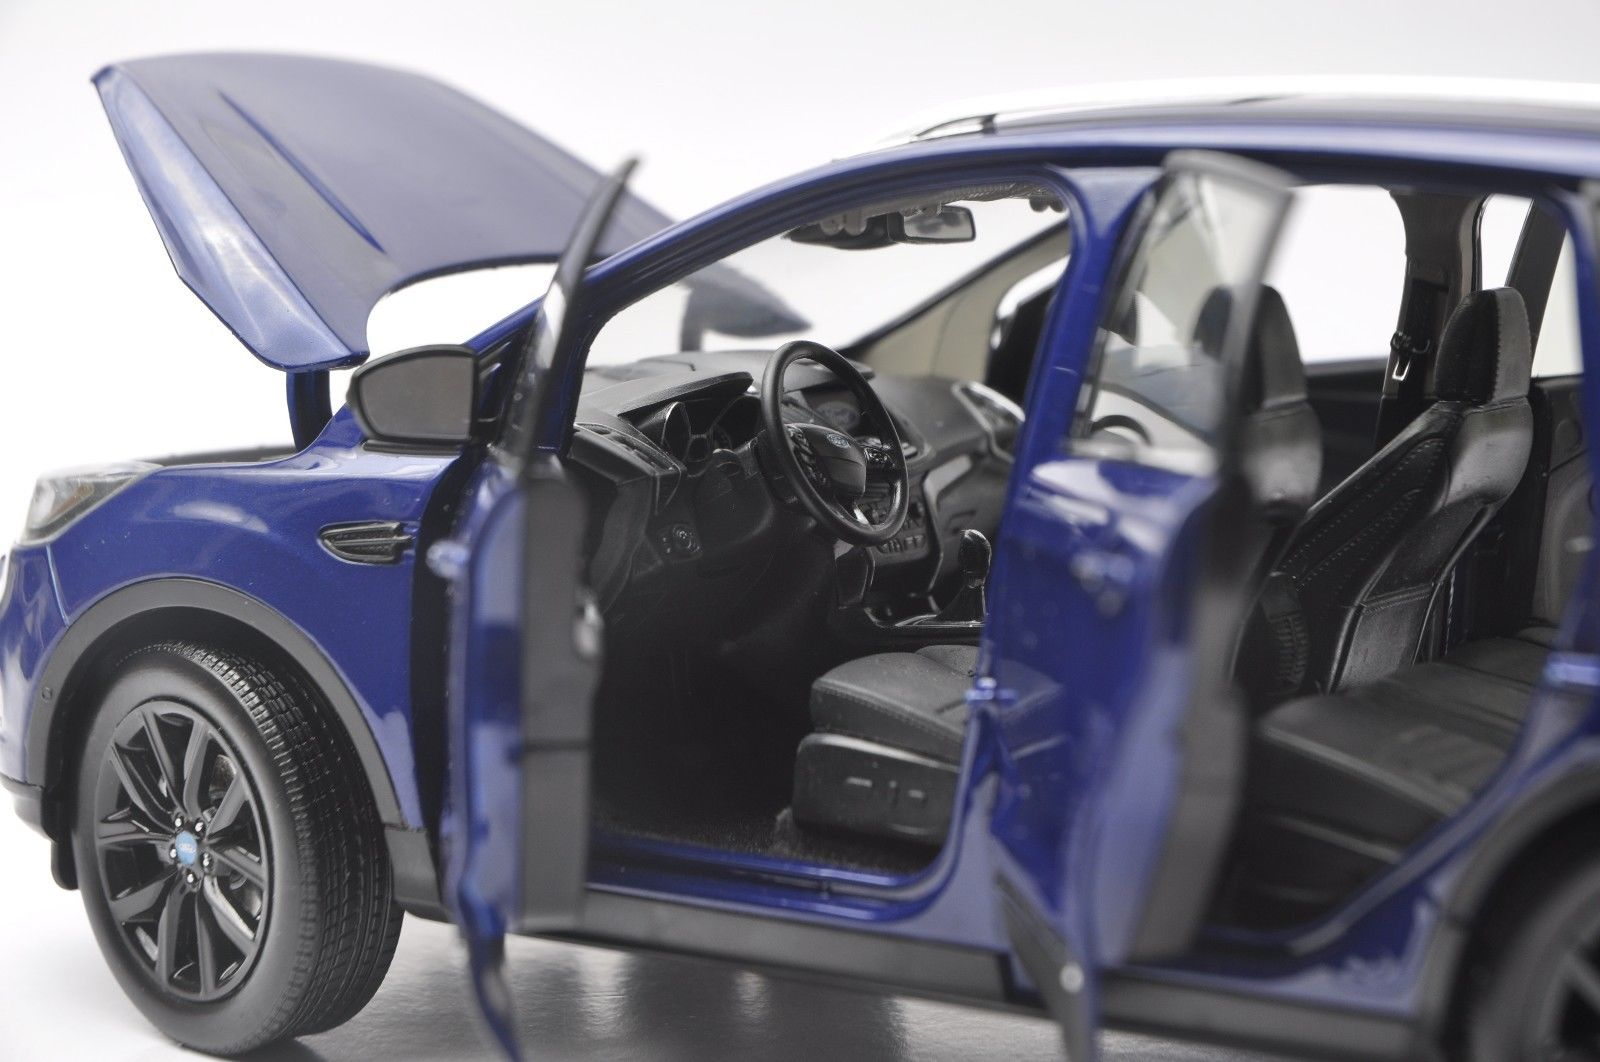 1:18 Diecast Model for Ford Kuga Escape Sport Edition 2018 Blue SUV Alloy Toy Car Miniature Collection Gifts (Alloy Toy Car, Diecast Scale Model Car, Collectible Model Car, Miniature Collection Die-cast Toy Vehicles Gifts)